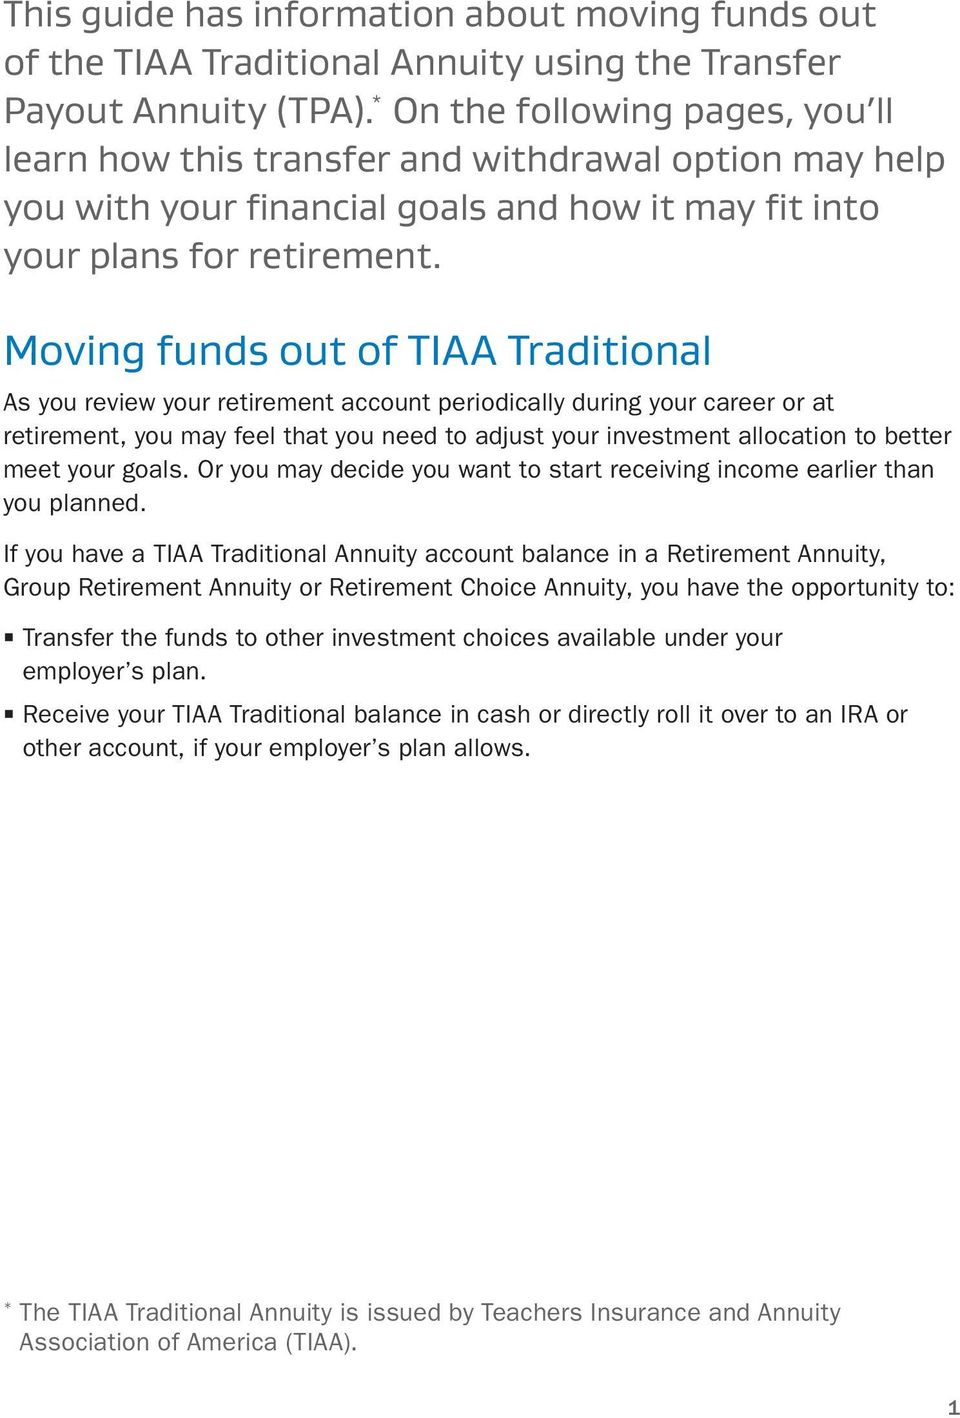 Moving funds out of Tiaa Traditional As you review your retirement account periodically during your career or at retirement, you may feel that you need to adjust your investment allocation to better